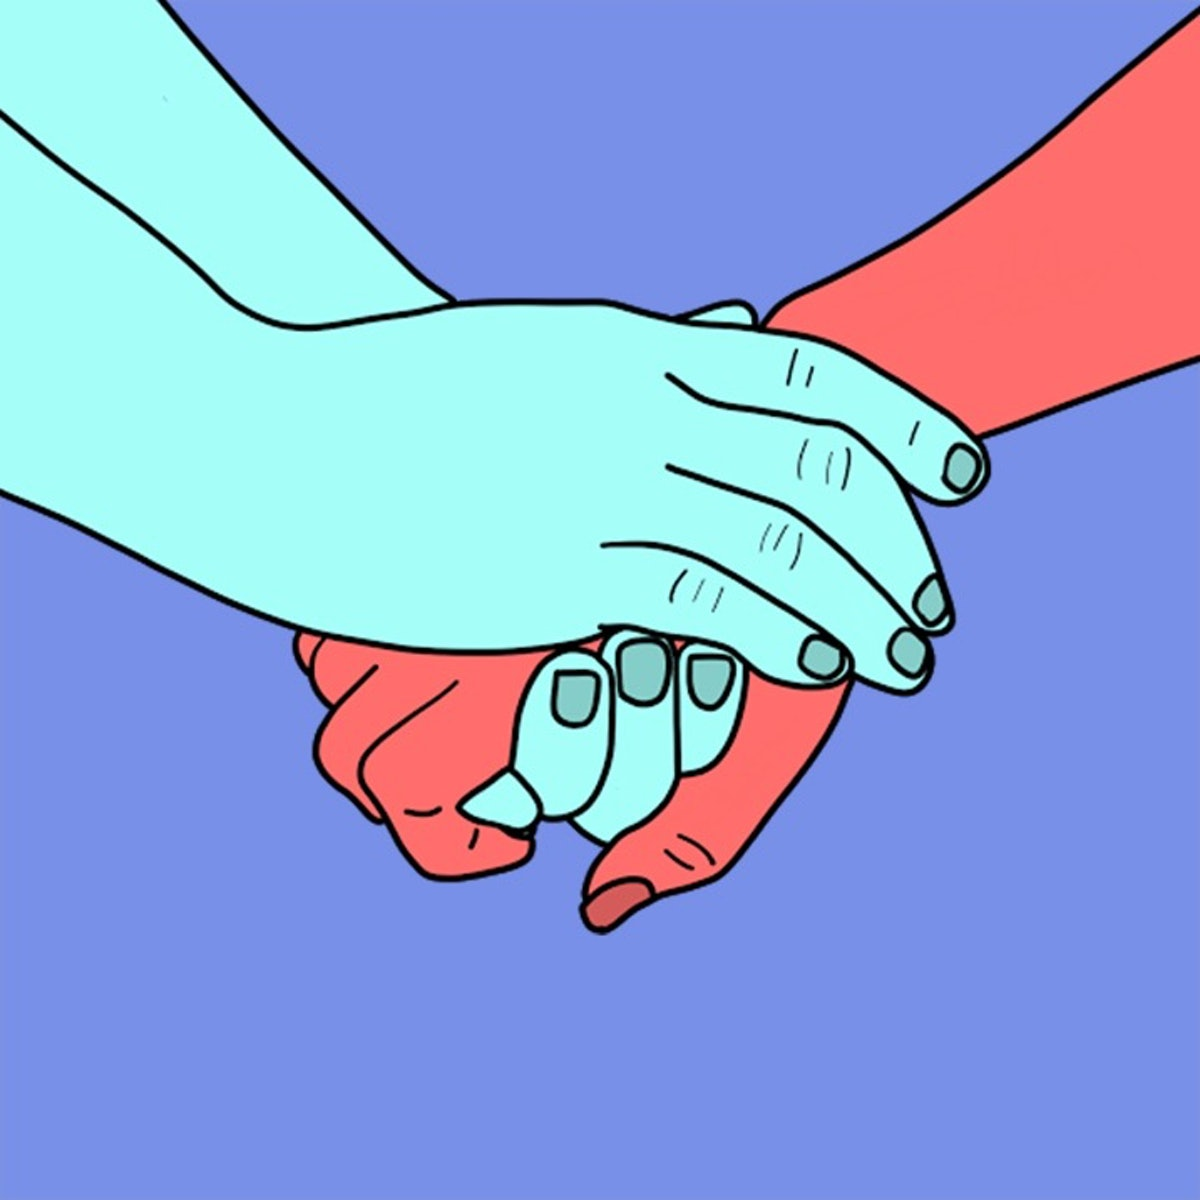 It's sweet when your partner wraps both hands around yours when holding hands.